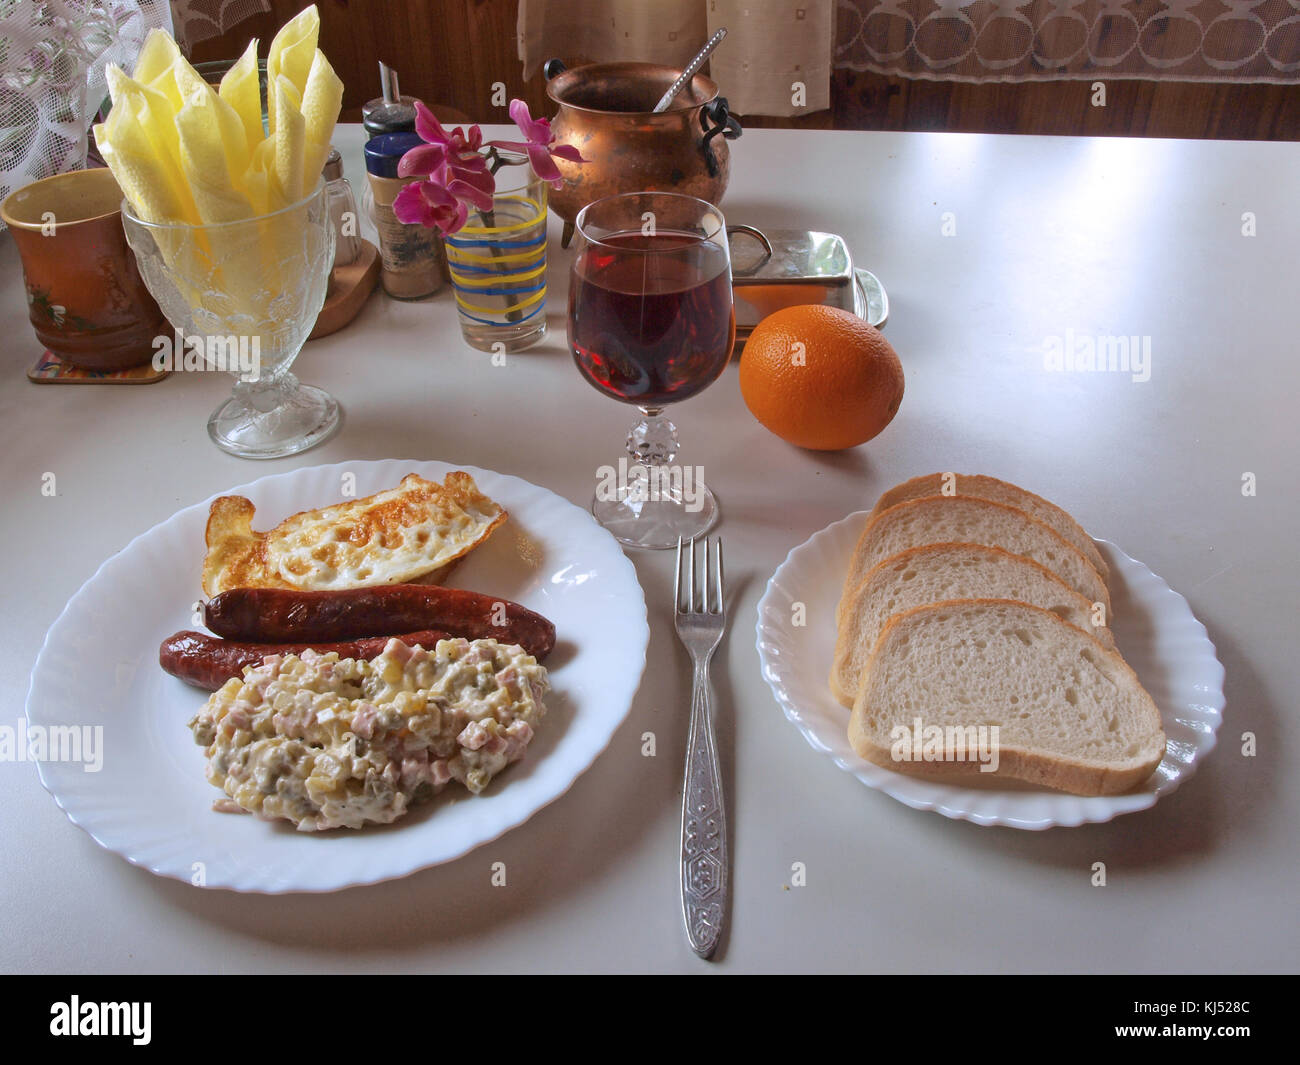 Table Served For Simple Breakfast With Bread Fried Eggs And Sausages On White Dishes